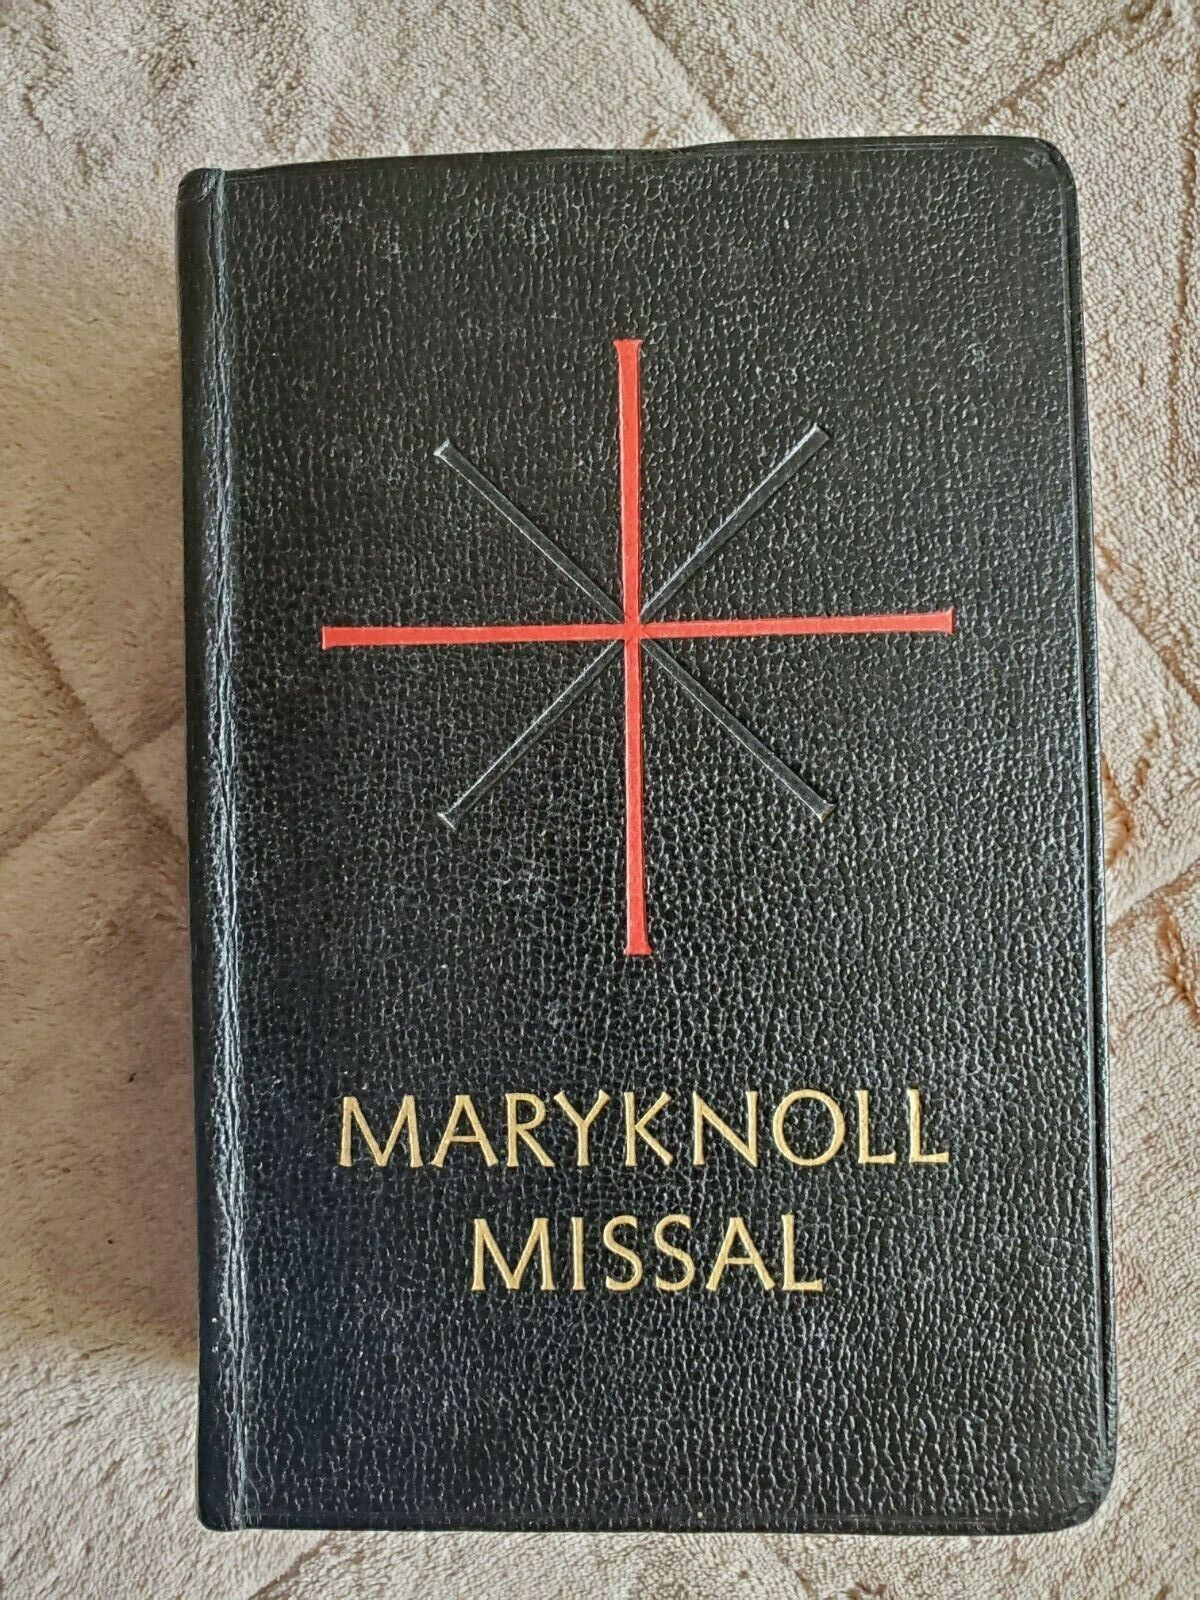 MaryKnoll Daily Missal Of The Mystical Body1961 Latin Mass Pre Vatican II  - $40.00